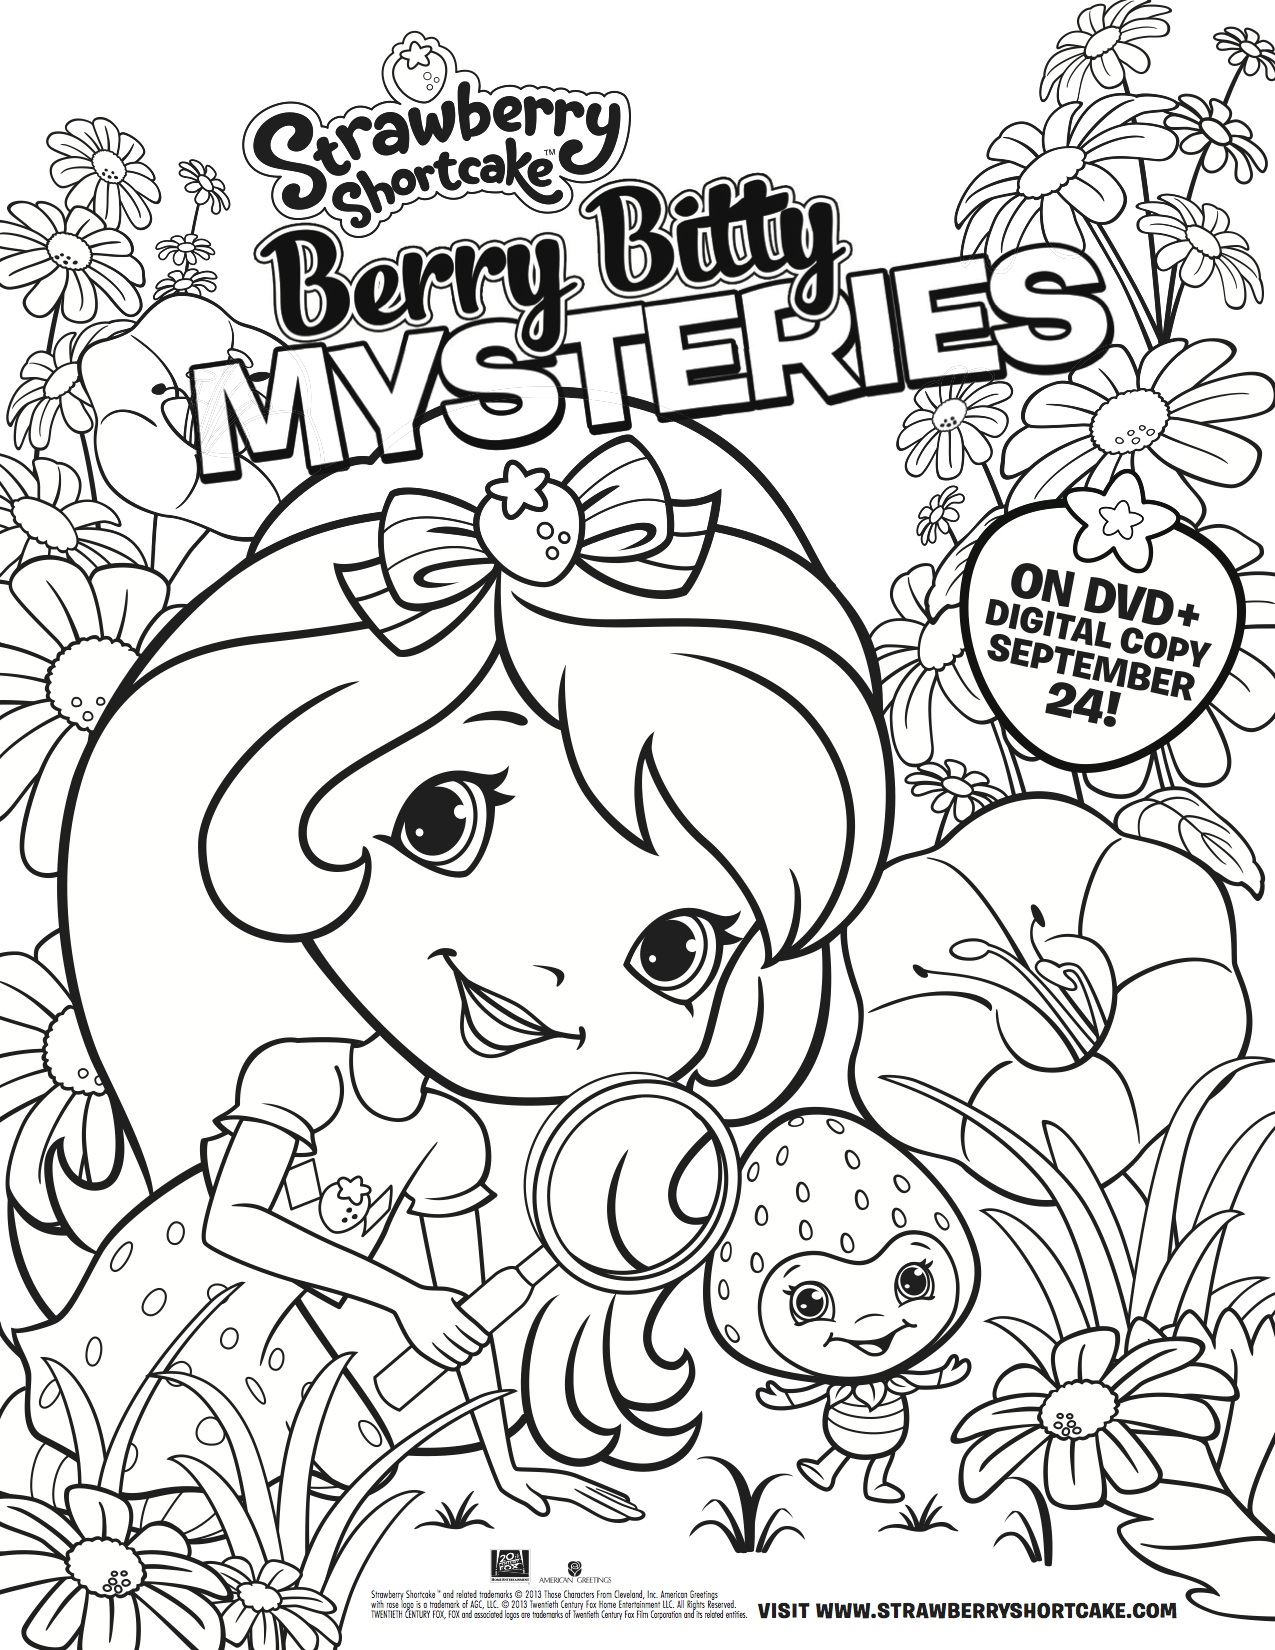 Free printable coloring pages rescue bots - Co Colouring Pages For Strawberry Shortcake Short Coloring Pages Print Strawberry